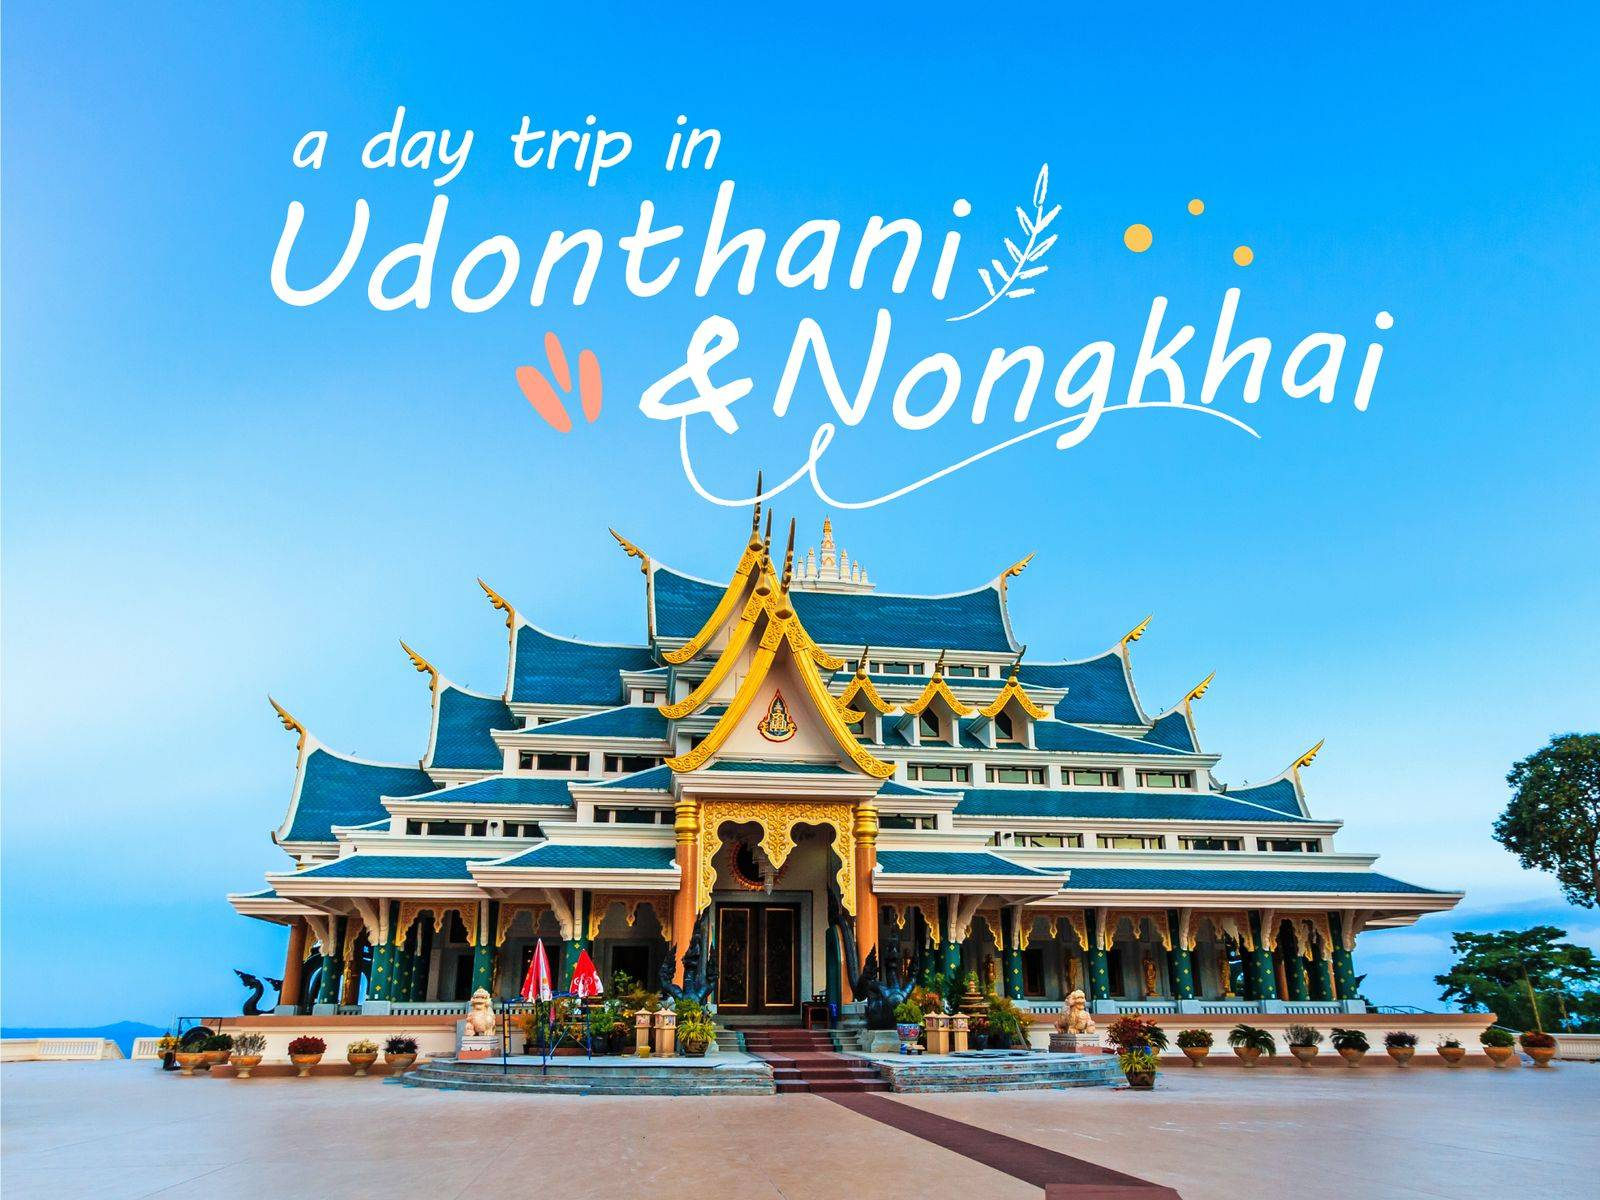 Nong Khai Tourist Attractions Udon Thani Things To Do